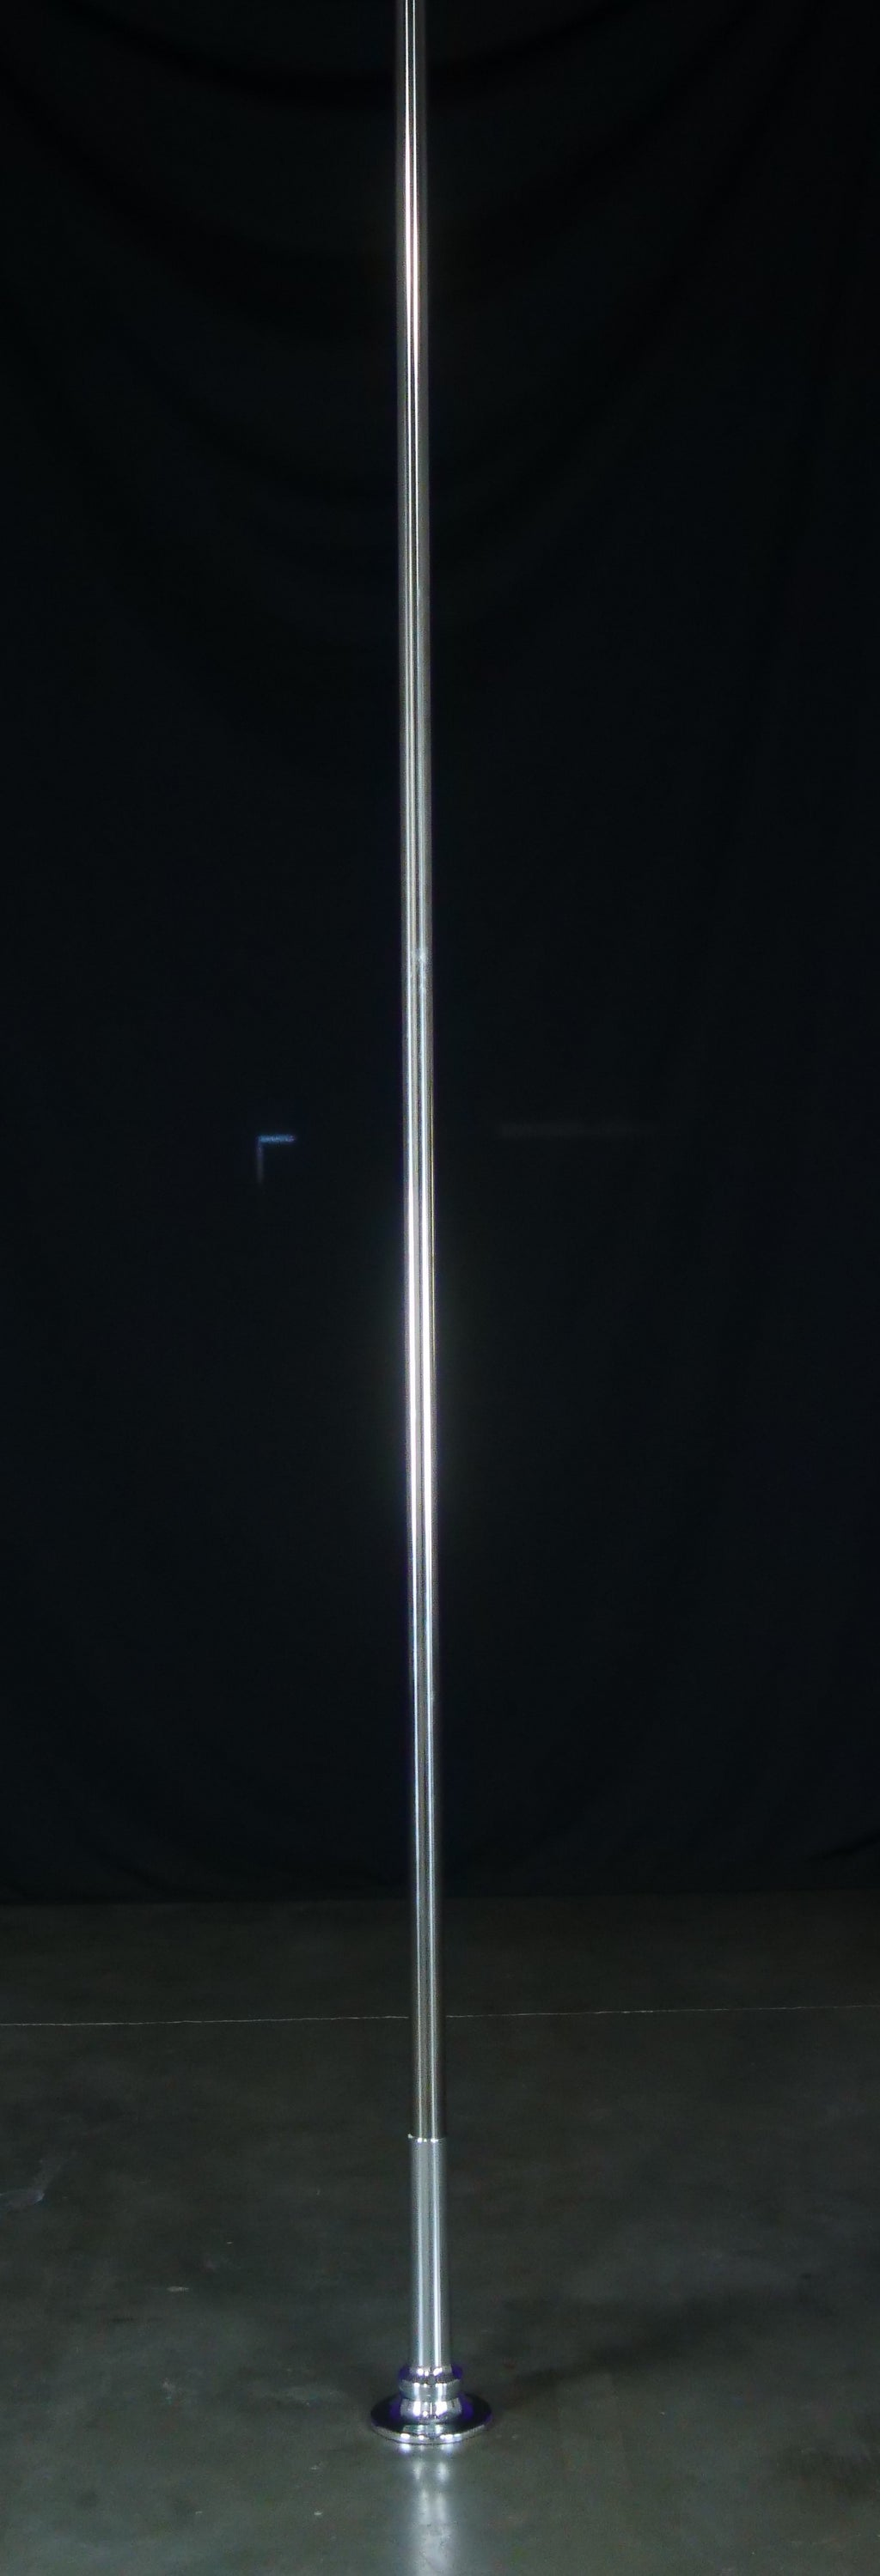 EXTREME ONE PIECE SUPER POLE - Removable